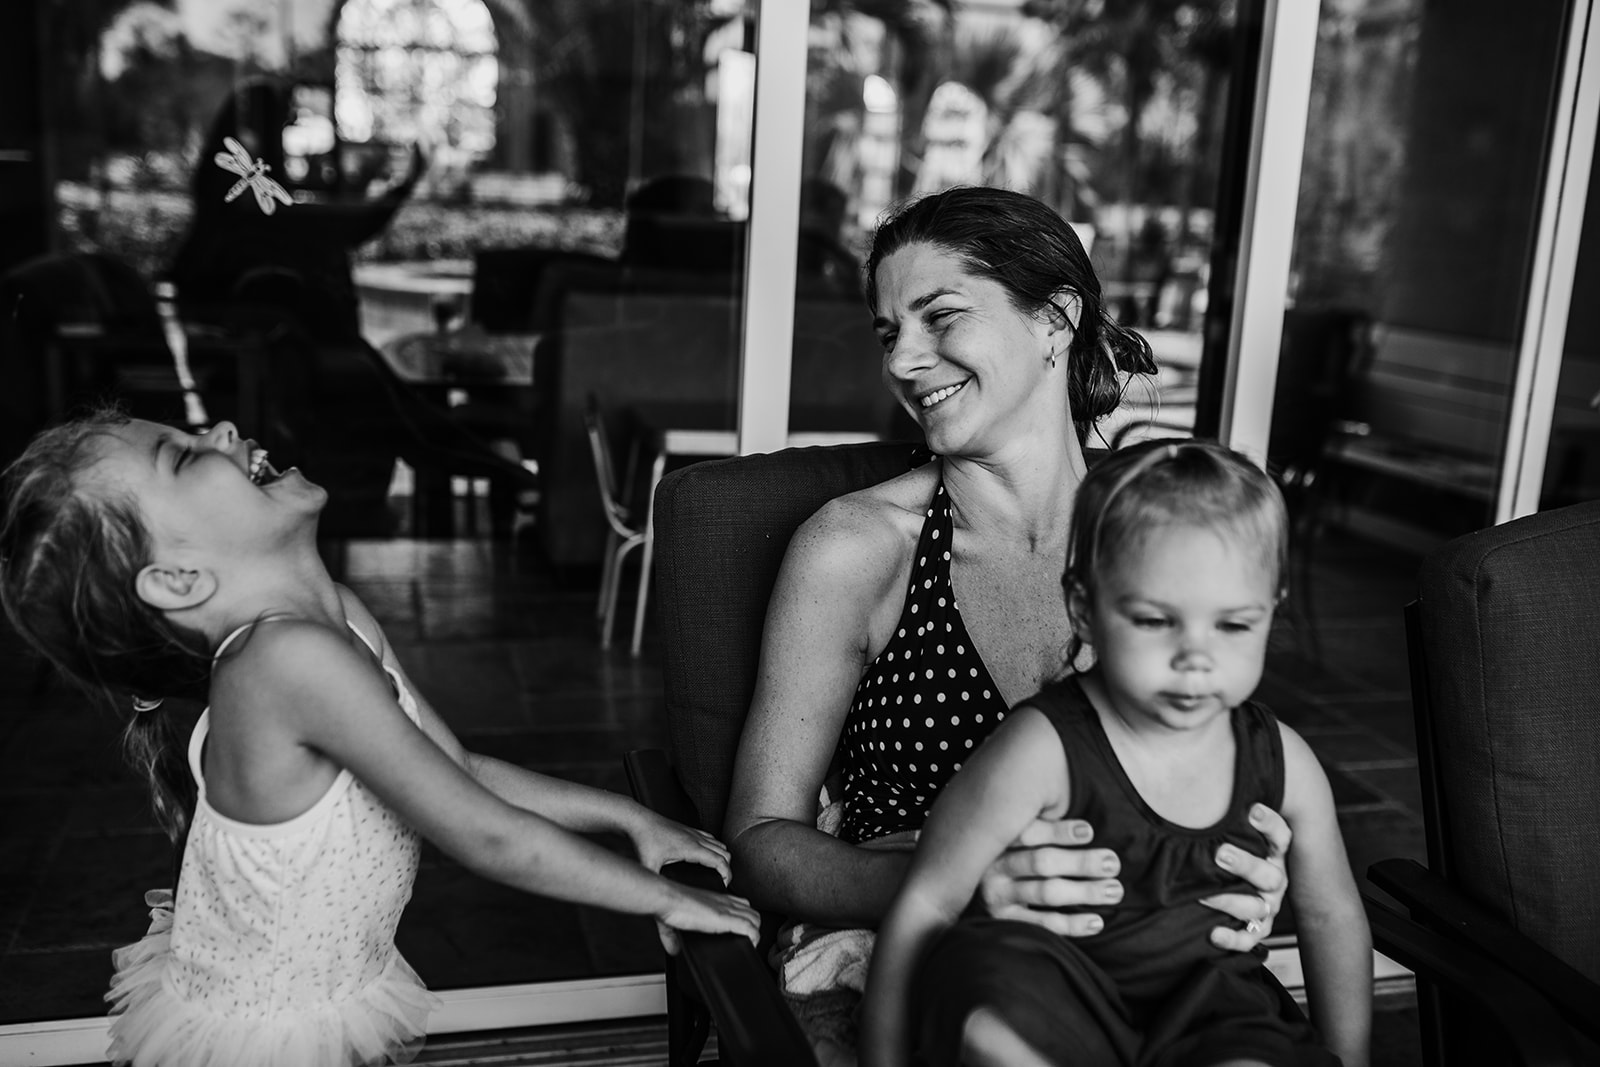 Mom and two girls laughing